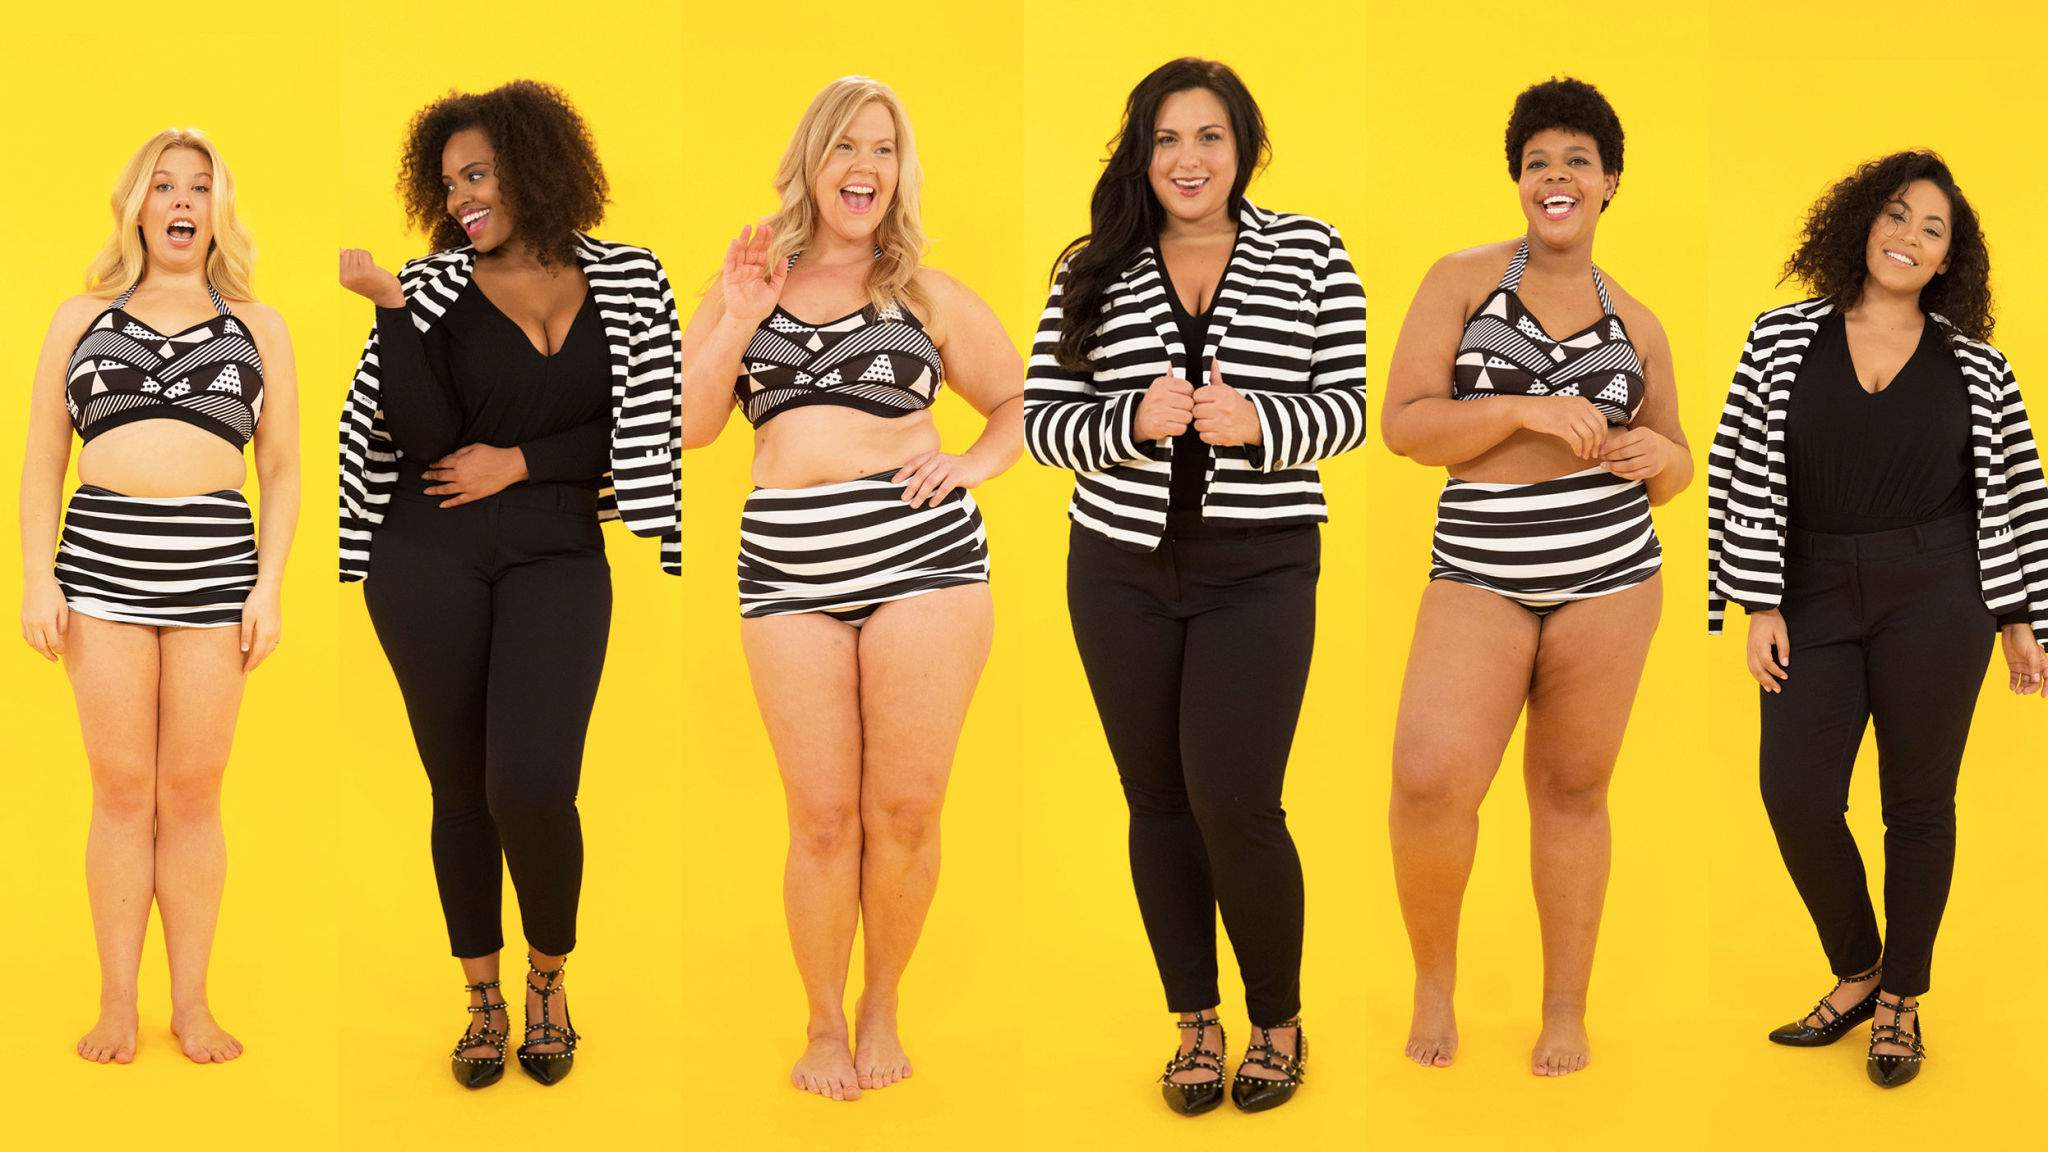 The Average American Woman Wears Size 16 to 18, StudyFinds recommendations